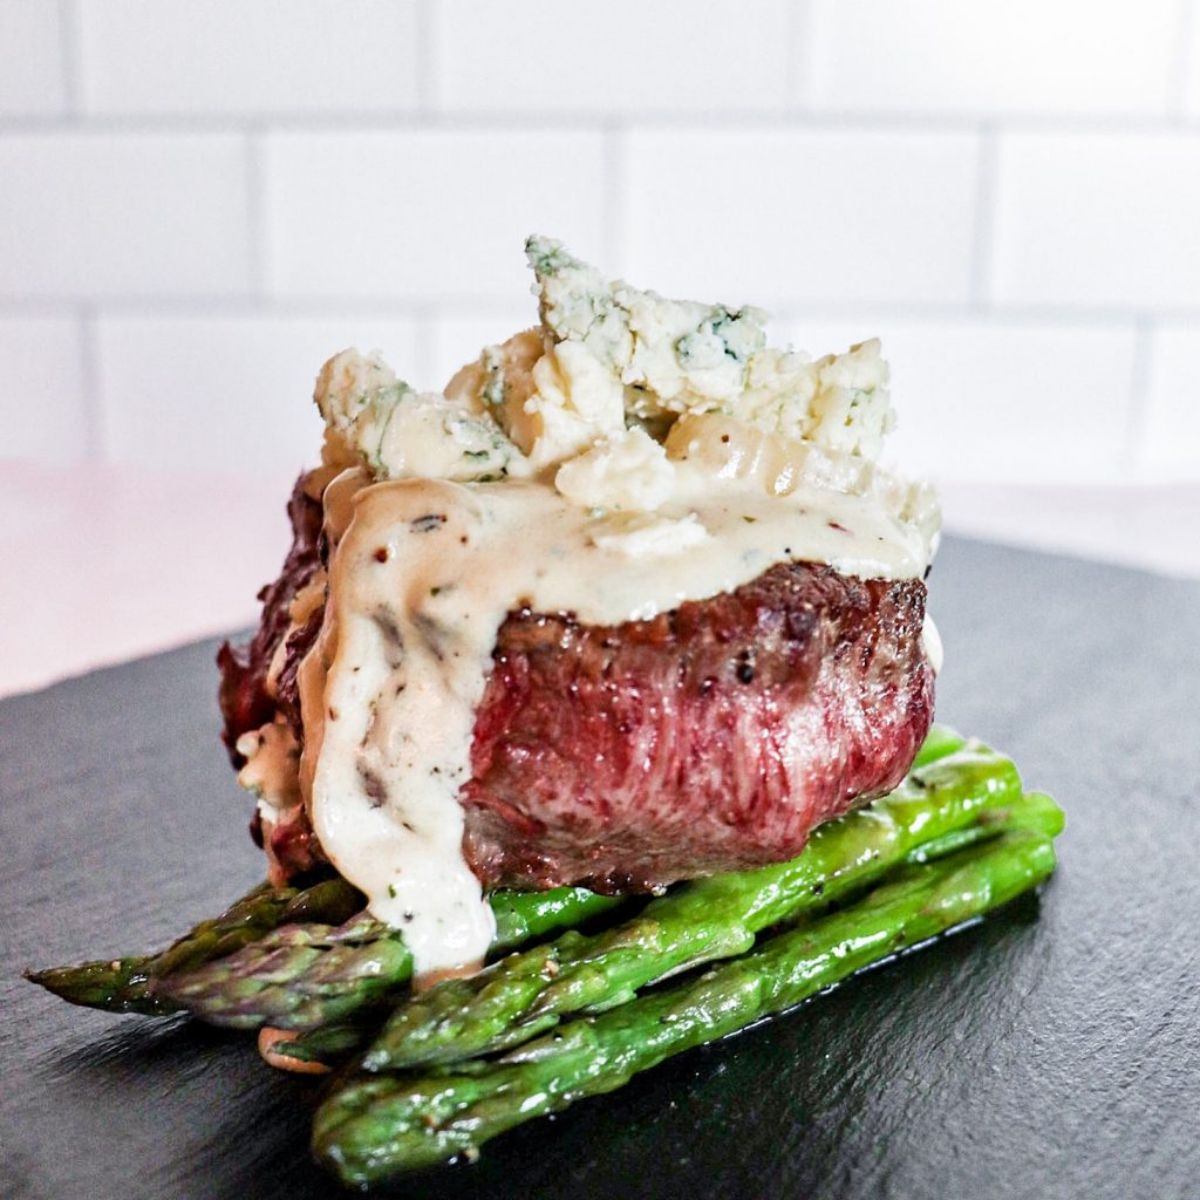 On a dark wooden board against a black background is a bunch of asparagus, with a thick steak on top, topped by a cheese sauce